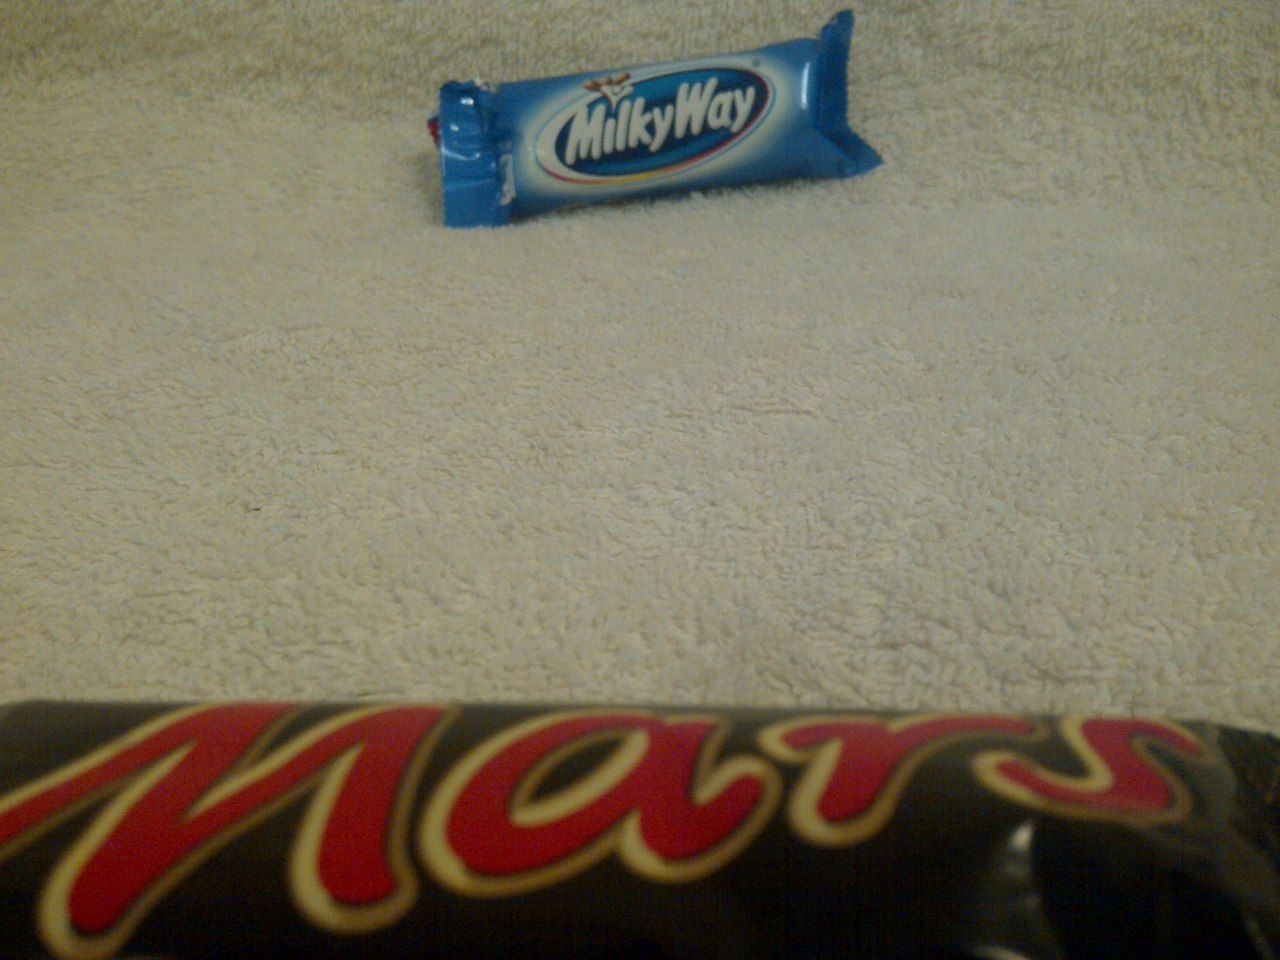 Breathtaking view of the Milky Way from the surface of Mars